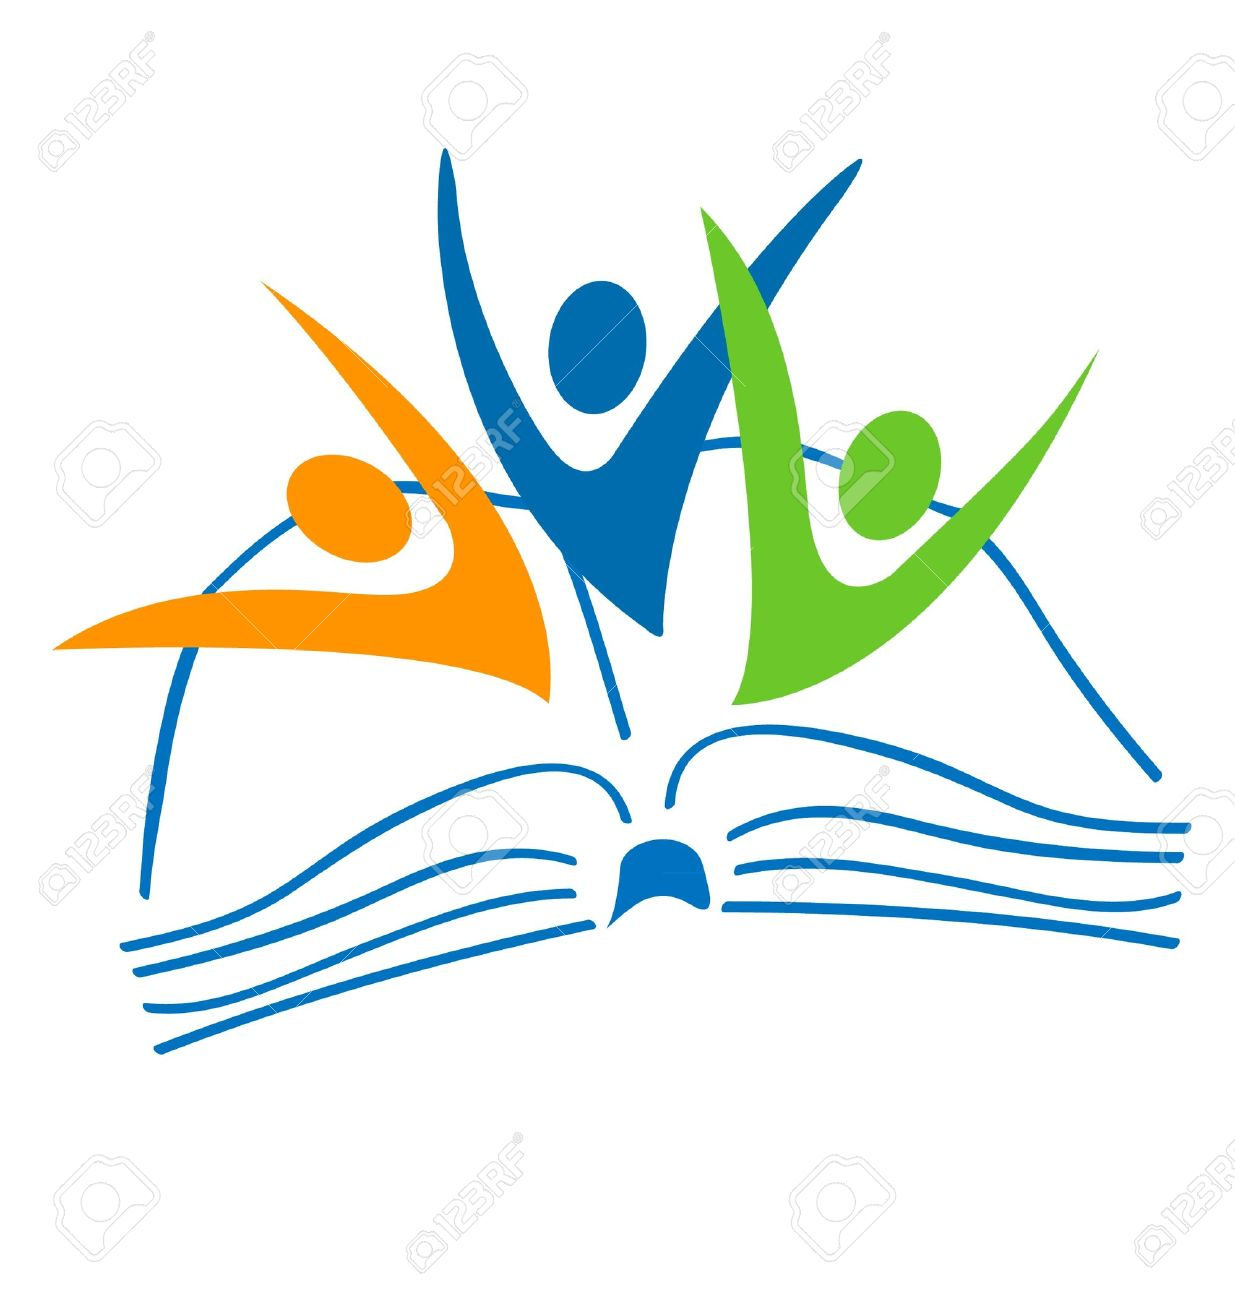 open book and students figures logo royalty free cliparts vectors rh 123rf com open book logo vector free download open book logo meaning